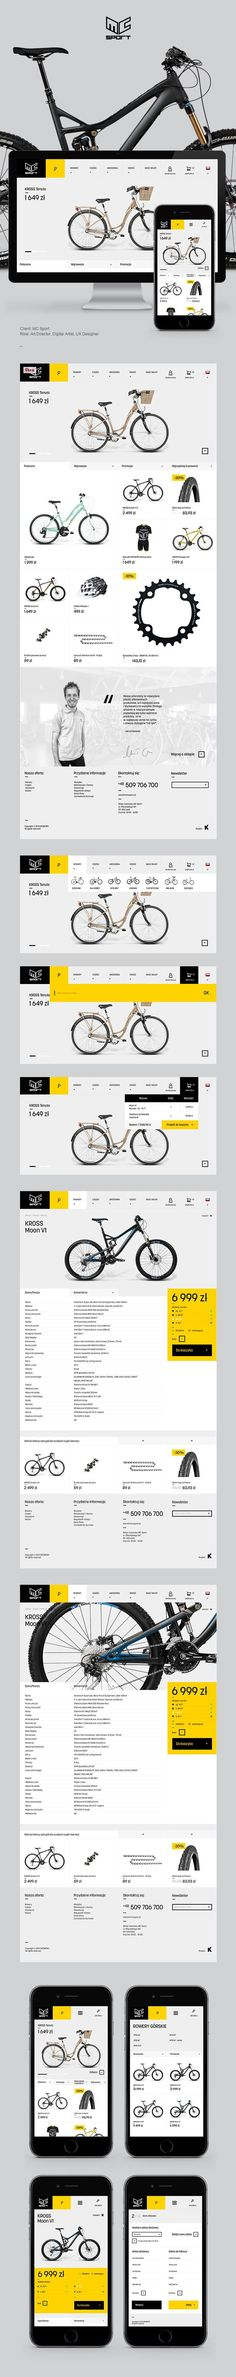 Web design inspiration | #1192 – From up North